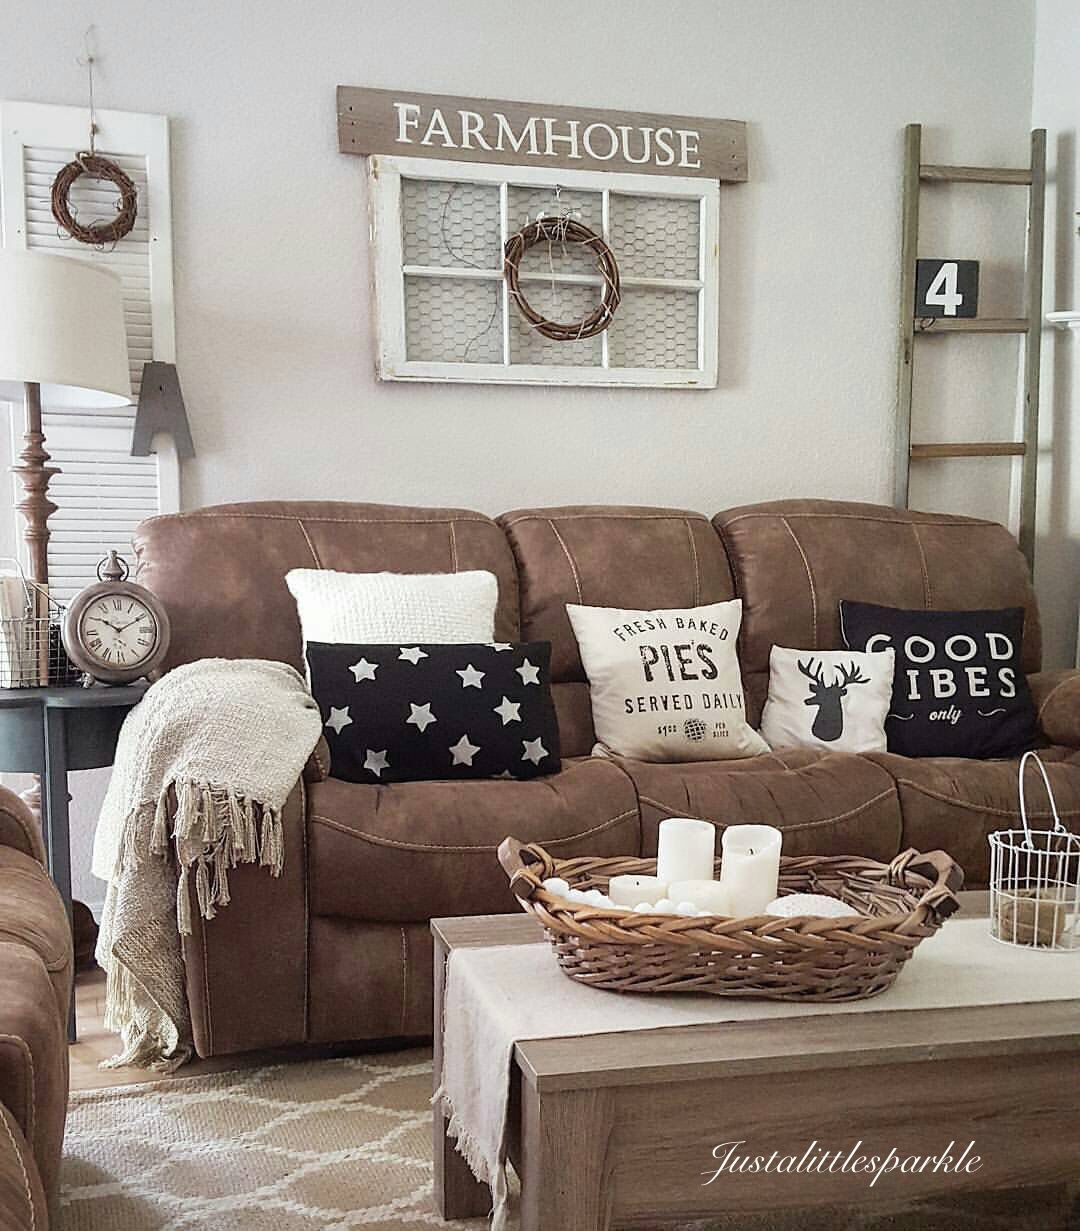 Brown Couch Living Room Design: 4 Farmhouse Living Room Maintenance Mistakes New Owners